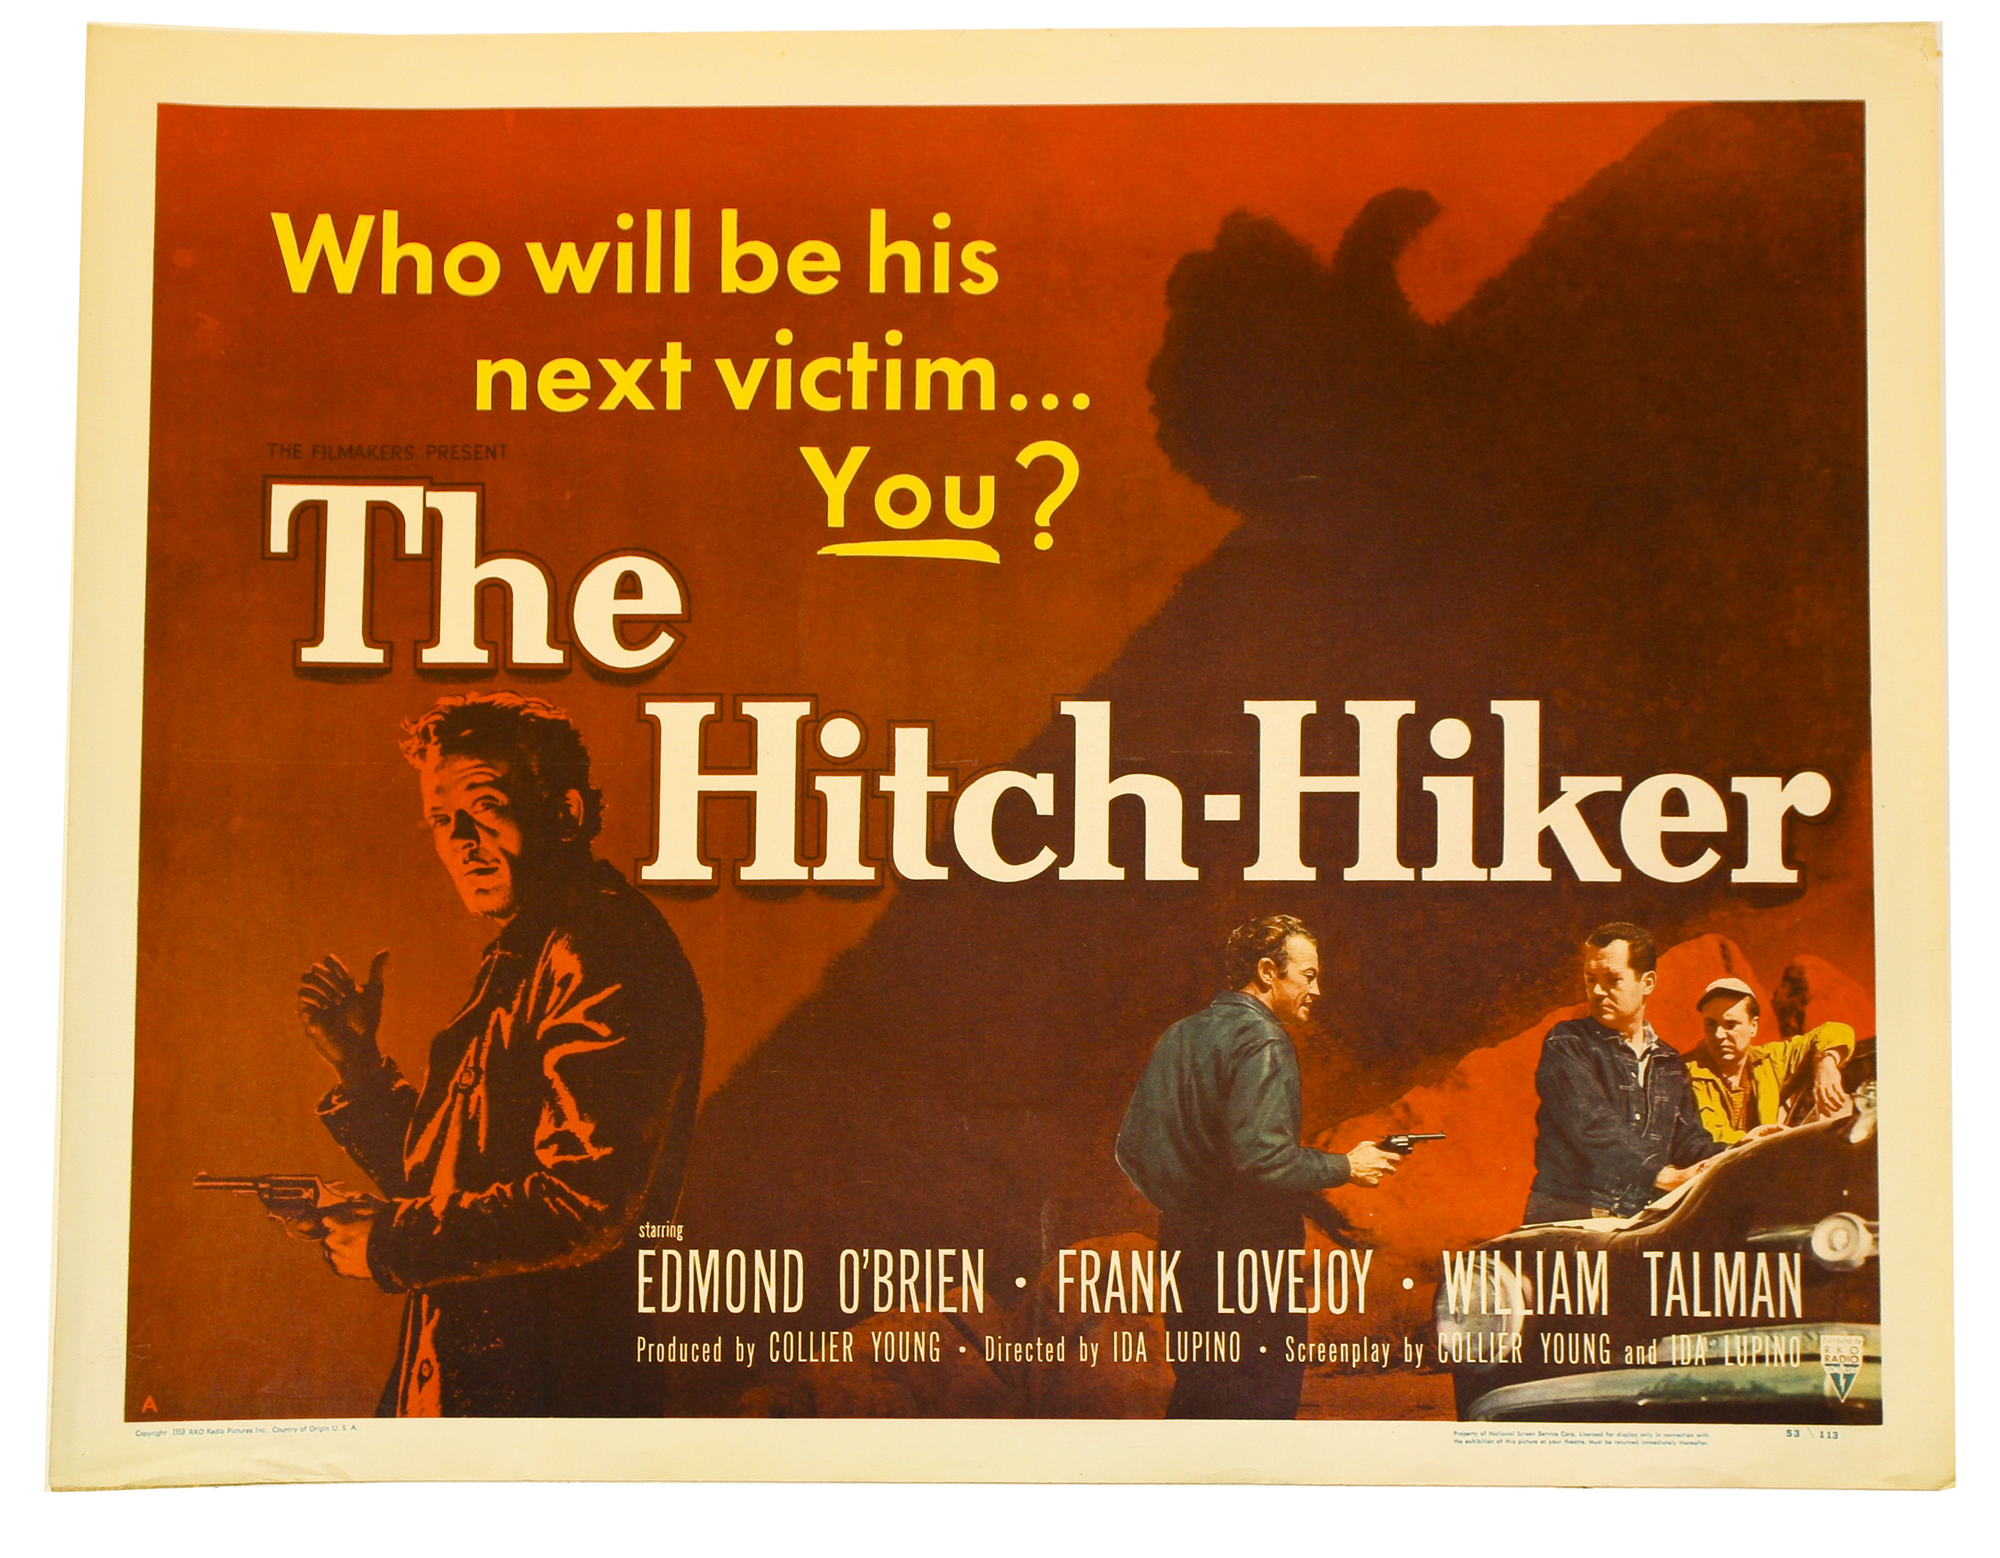 The hitch